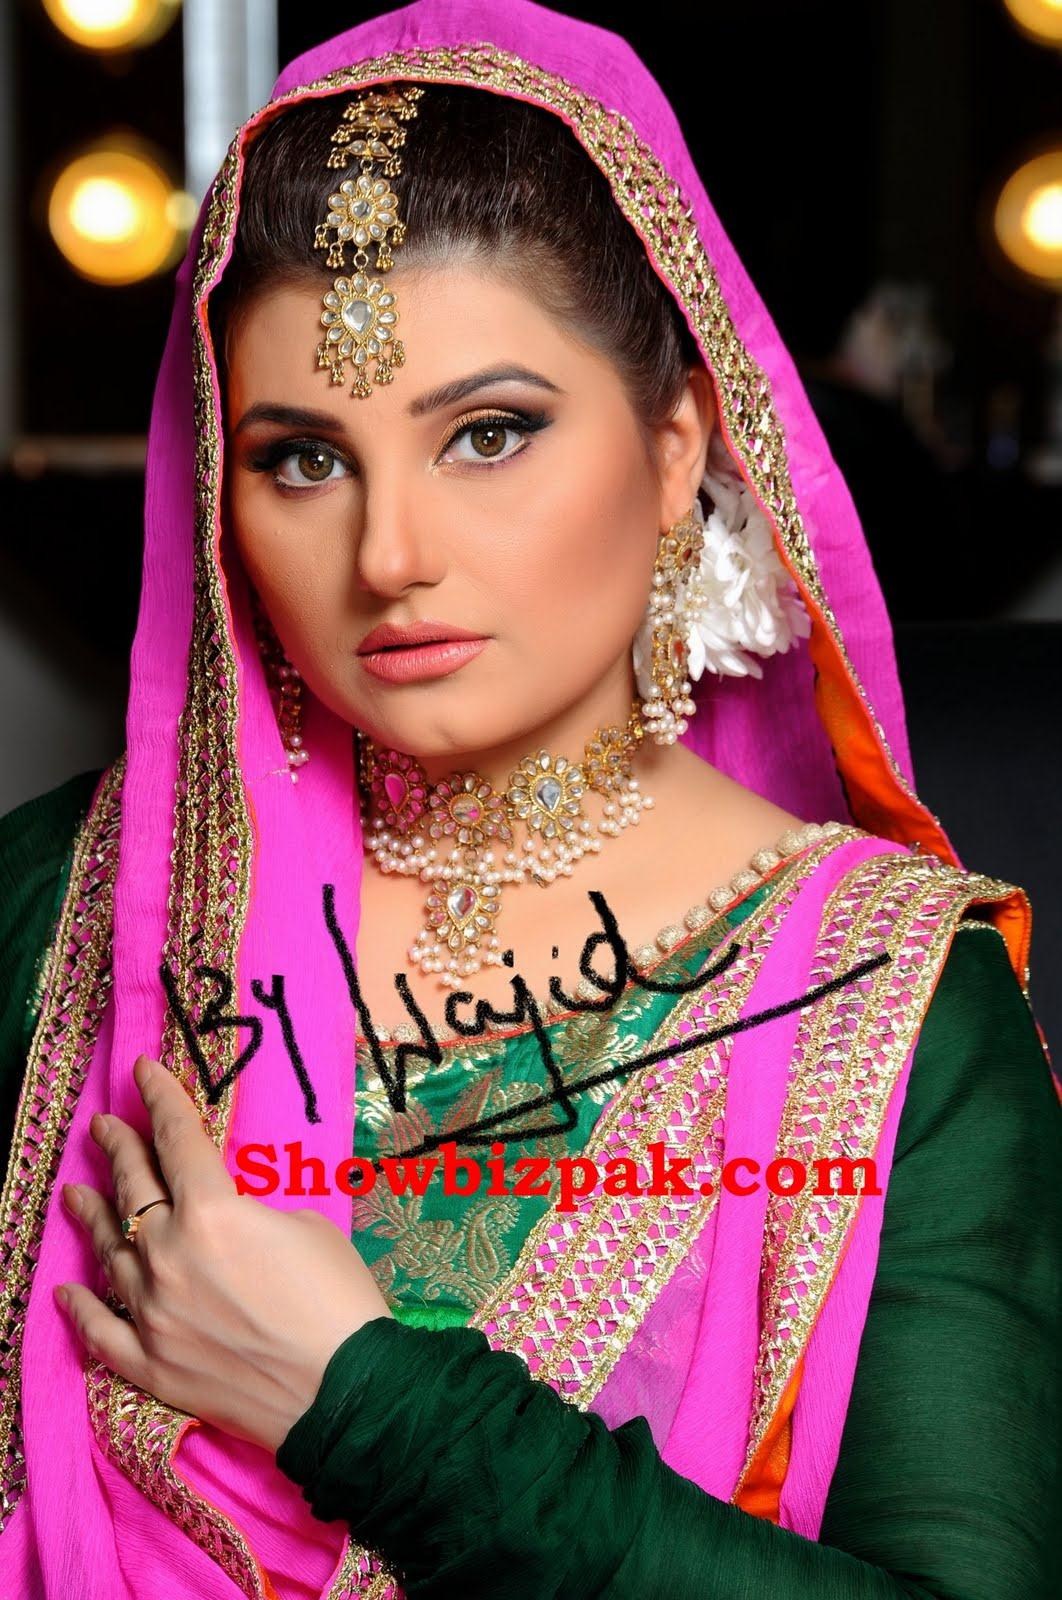 Javeria Saud Bridal Shoot 2011